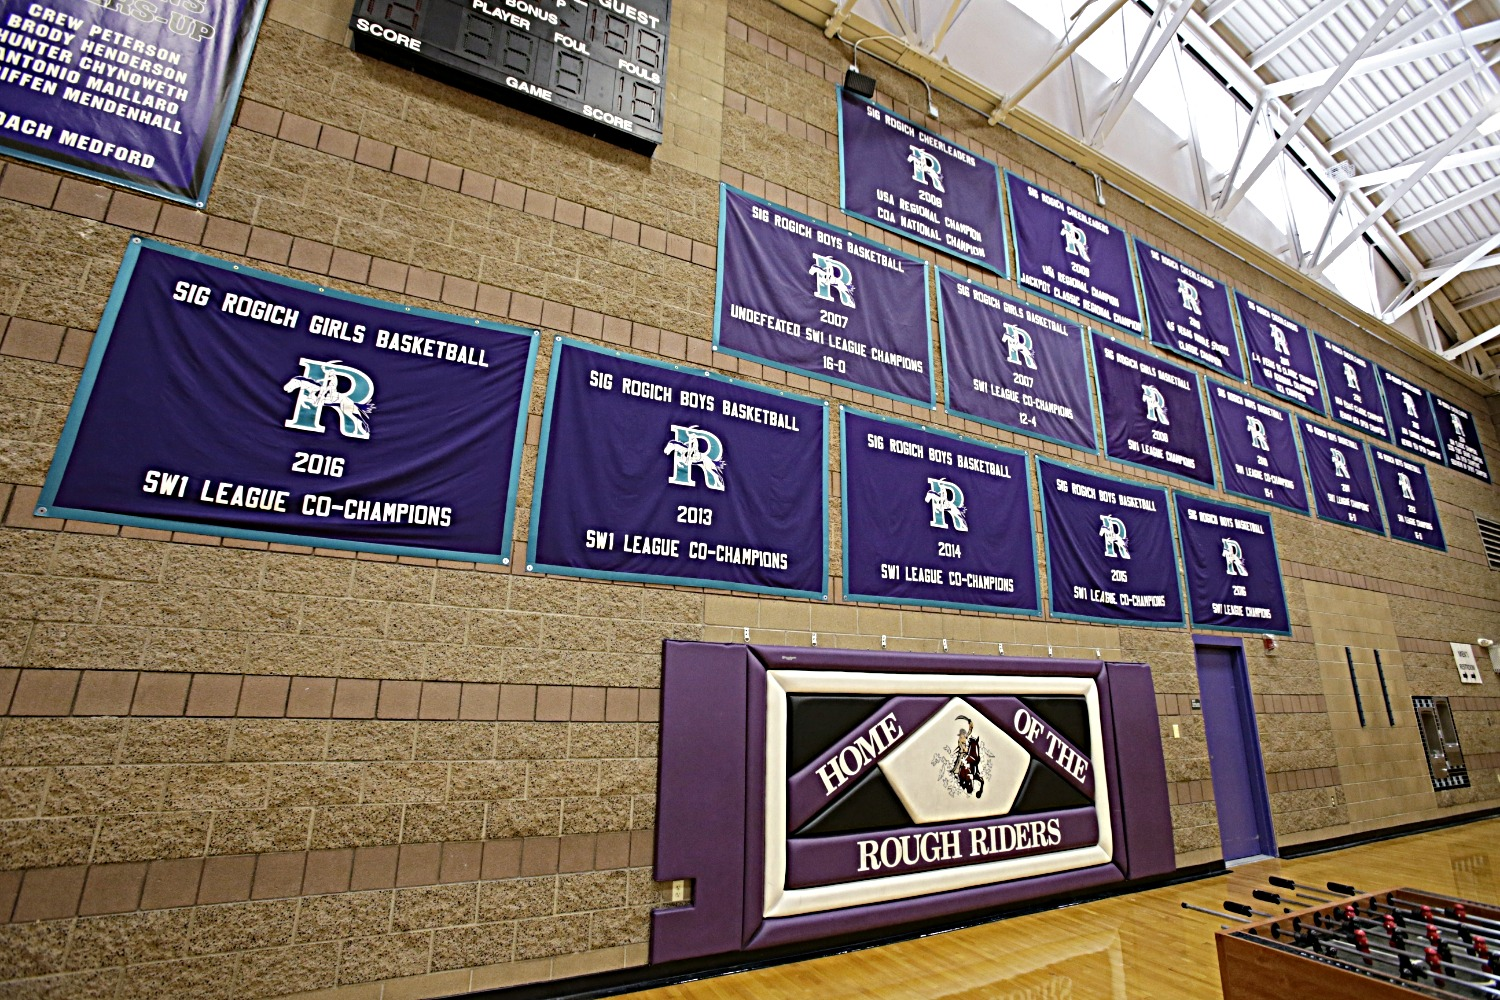 BannersVHC171023212_Rogich_Middle_School